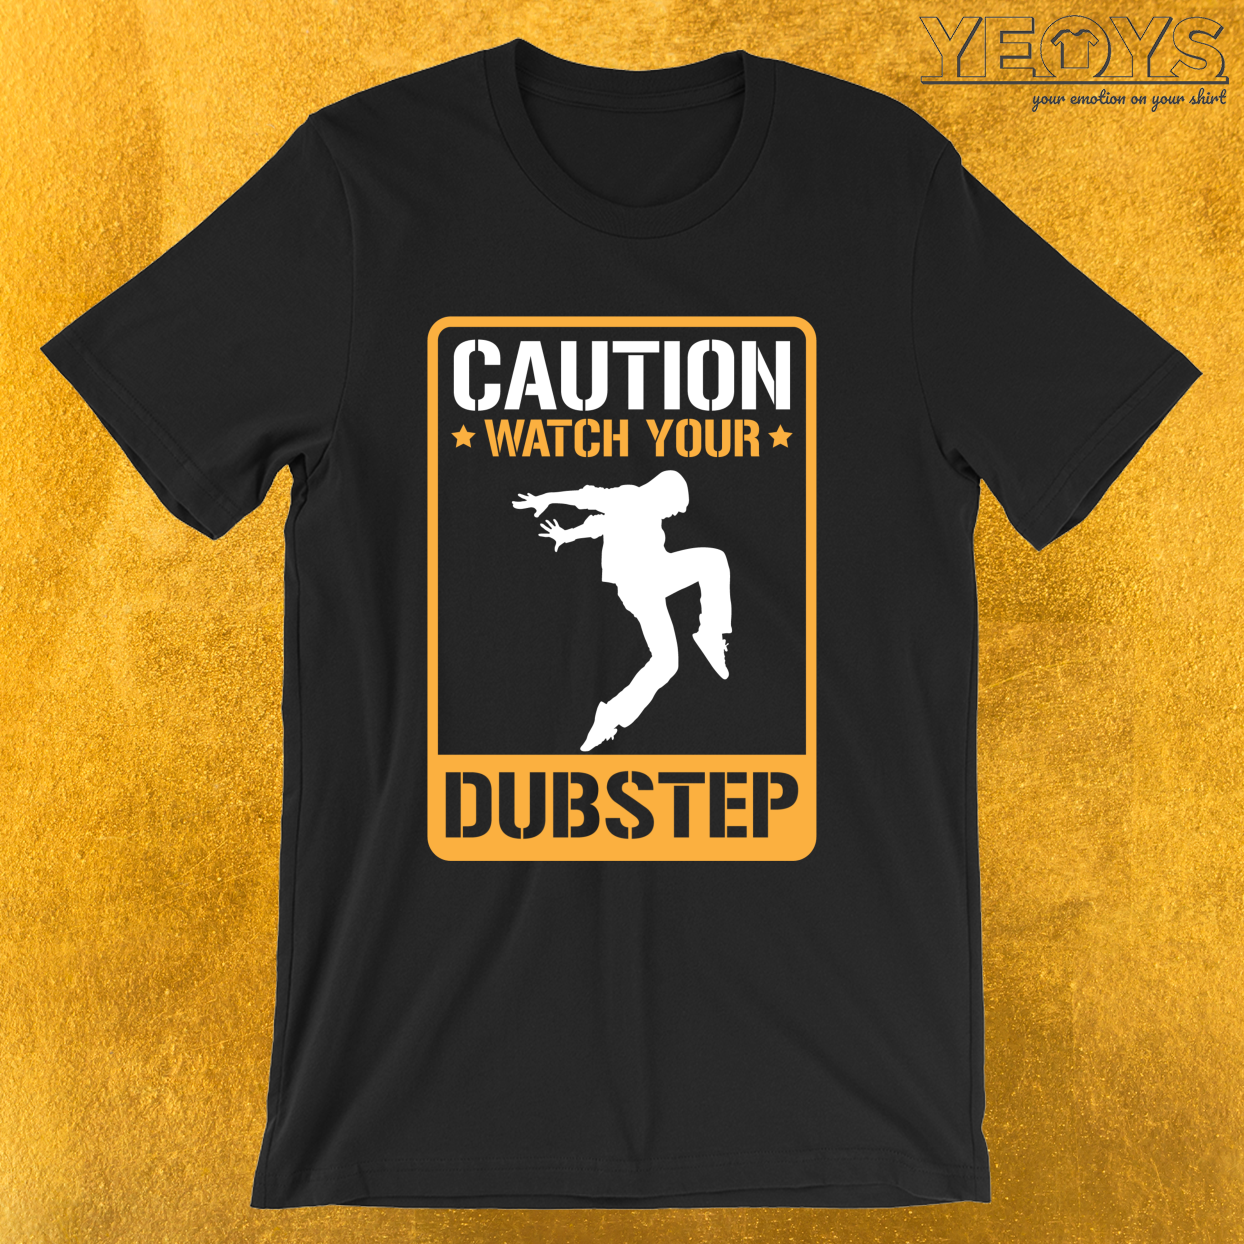 Caution Watch Your Dubstep – Dubstep Quotes Tee